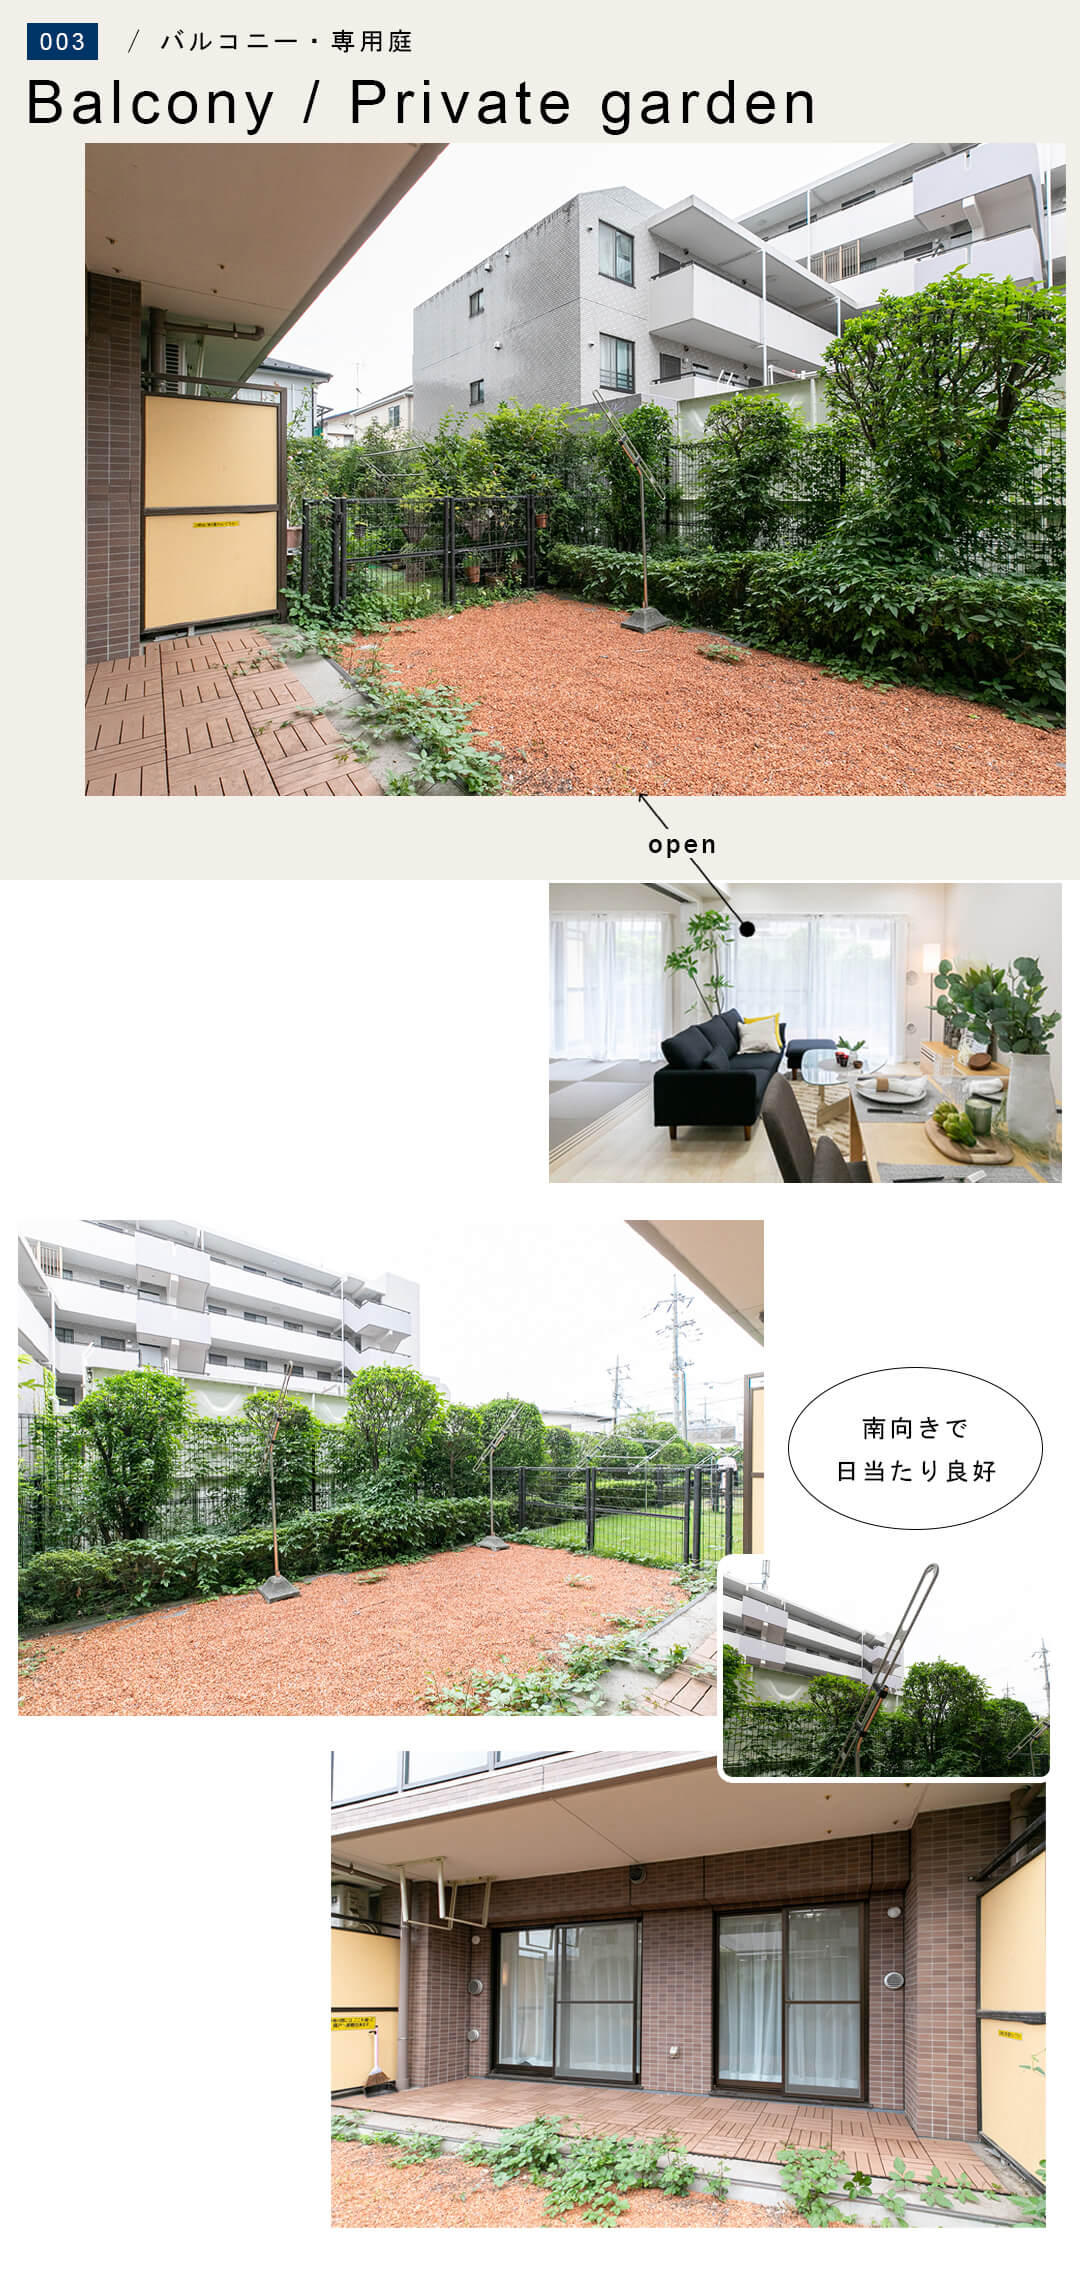 003バルコニー,専用庭Balcony,Private garden